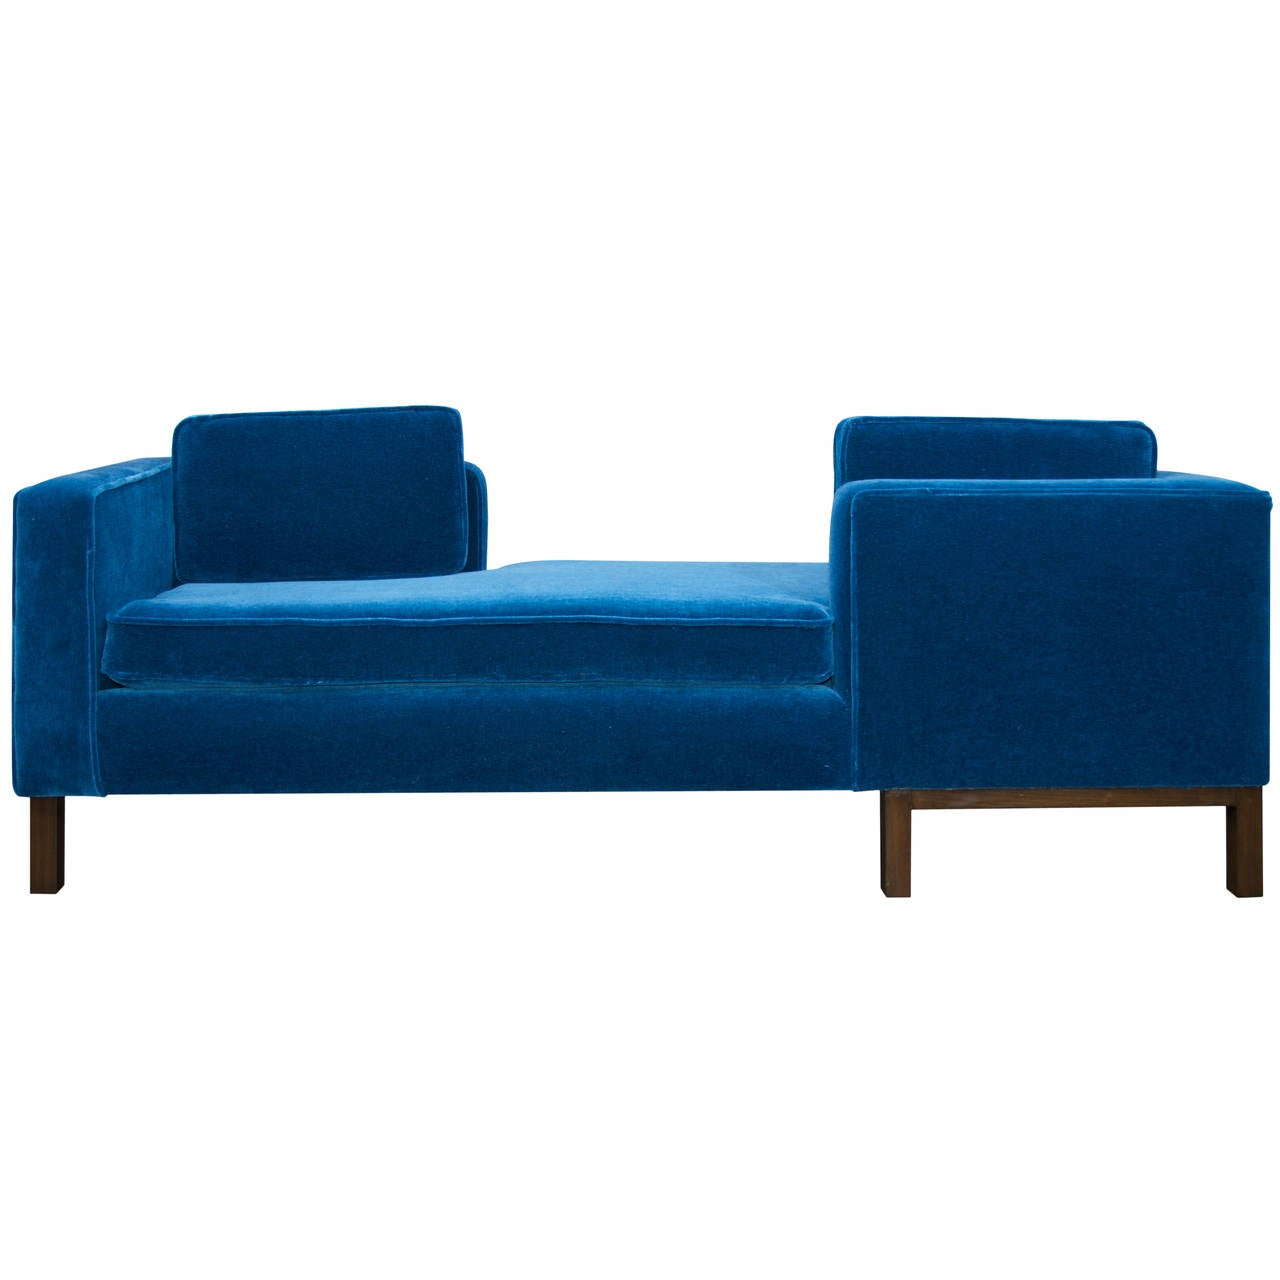 1970s tete a tete sofa attributed to harvey probber at 1stdibs. Black Bedroom Furniture Sets. Home Design Ideas